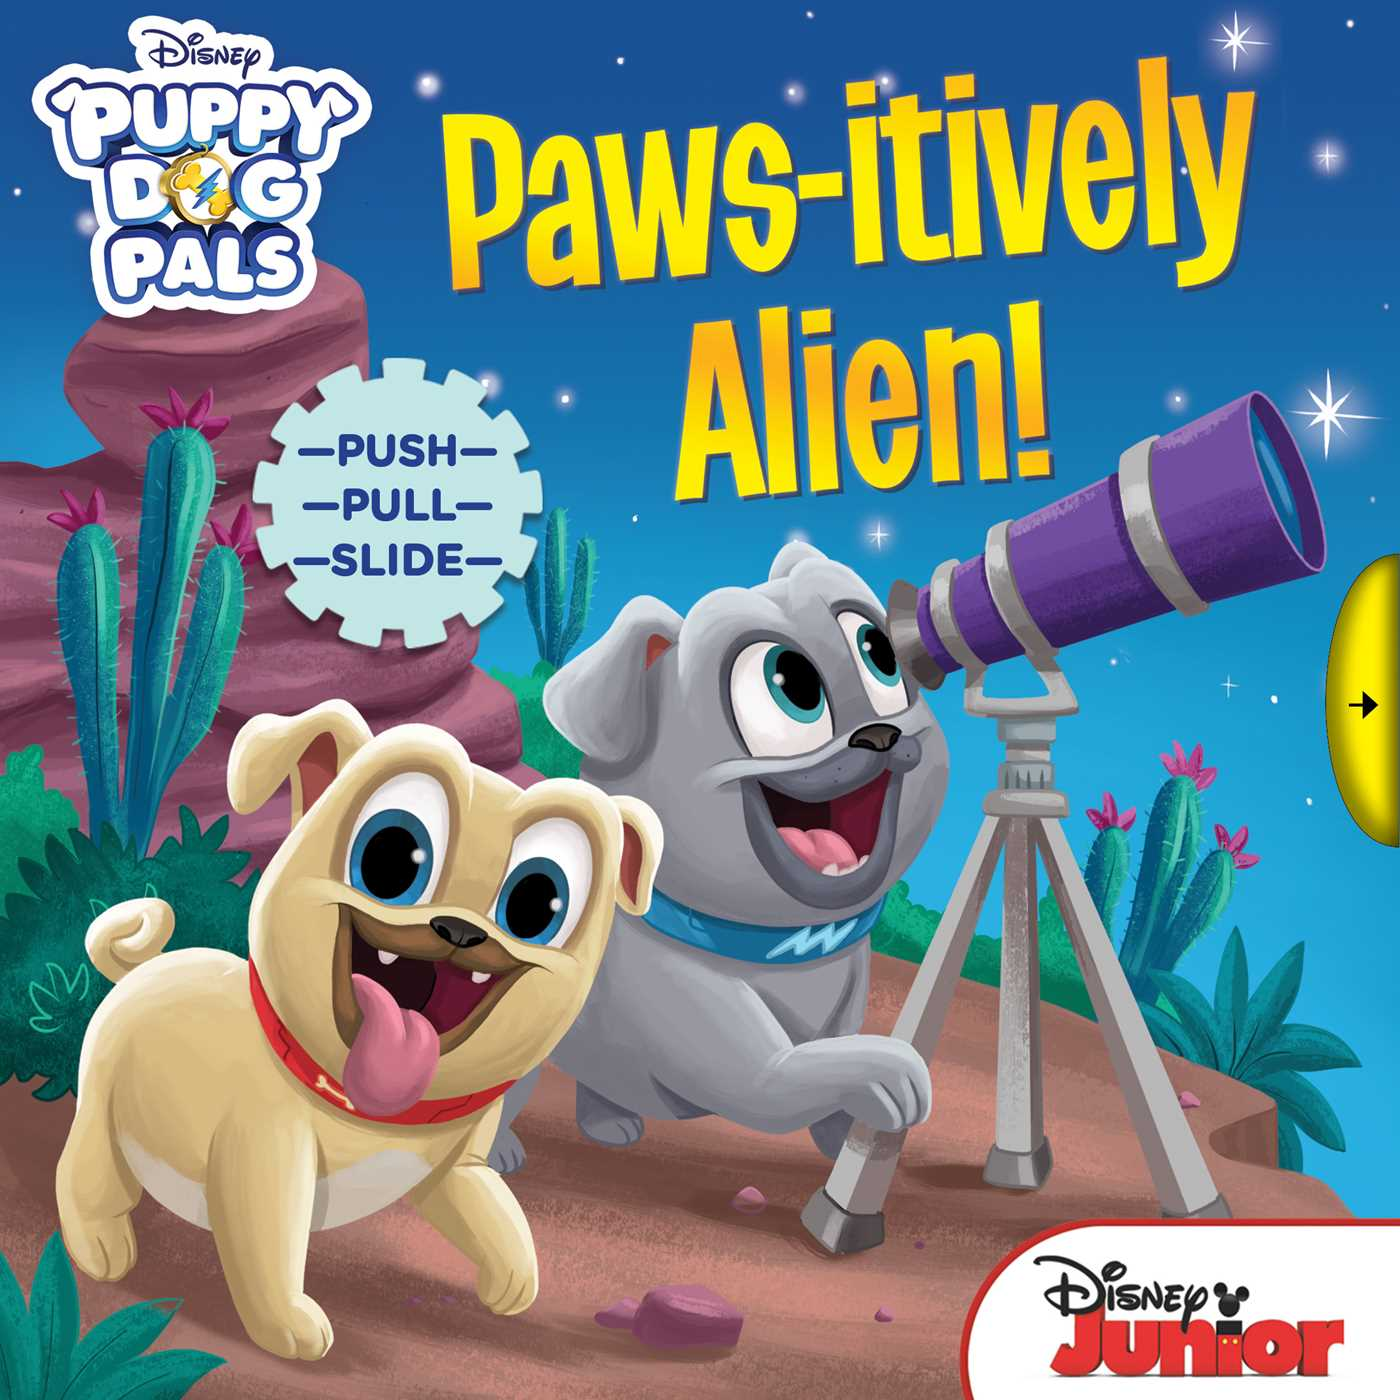 Disney puppy dog pals paws itively alien 9780794442019 hr